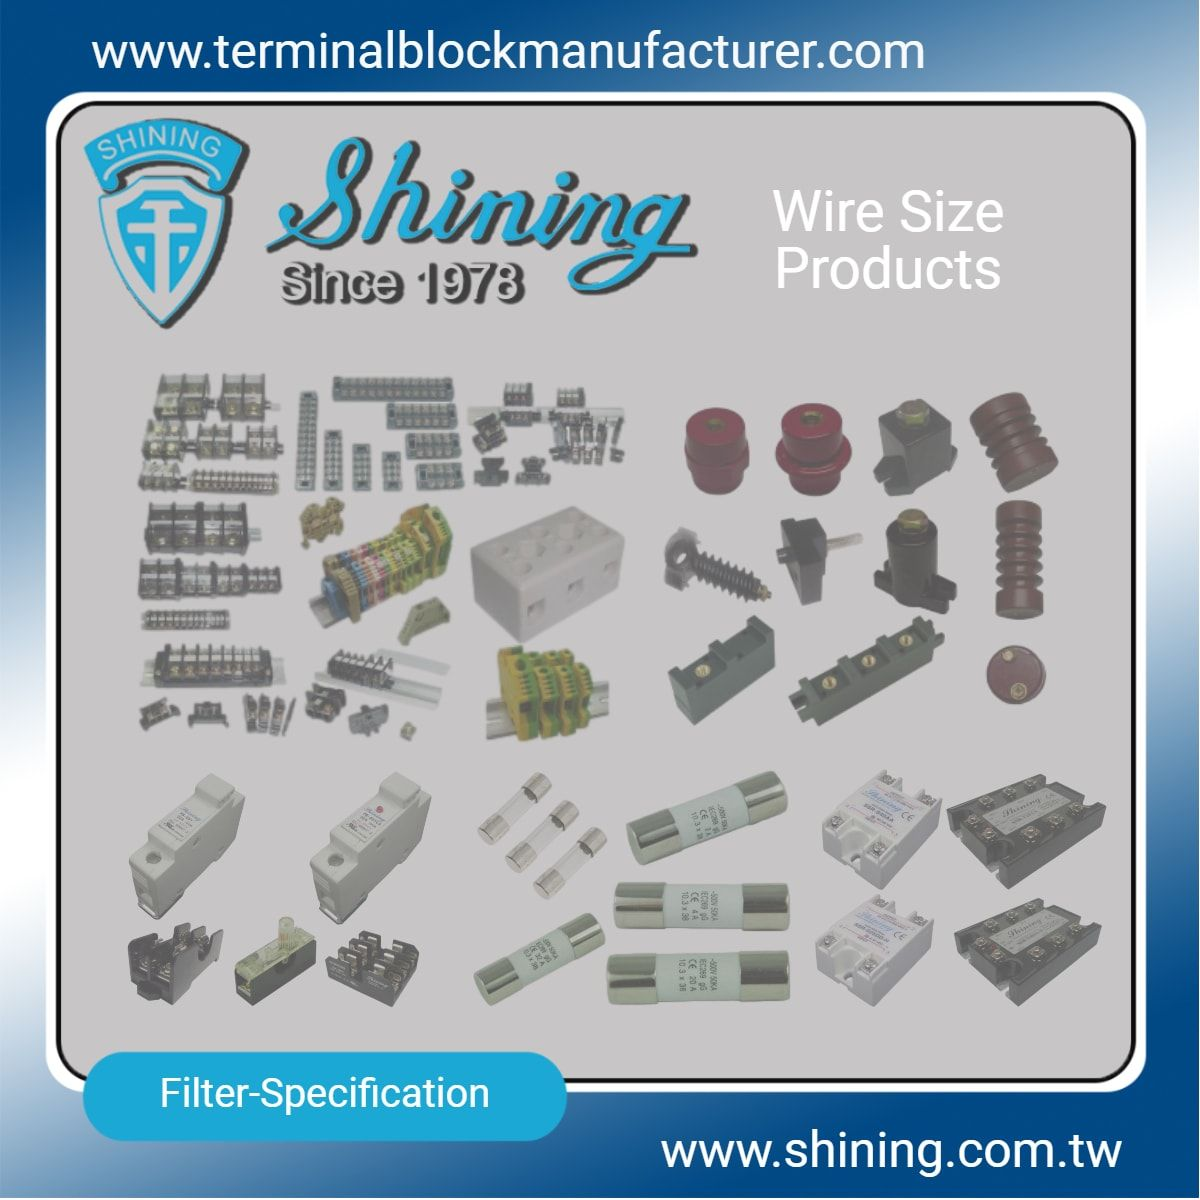 Wire Size Products - Terminal Blocks|Solid State Relay|Fuse Holder|Insulators -SHINING E&E